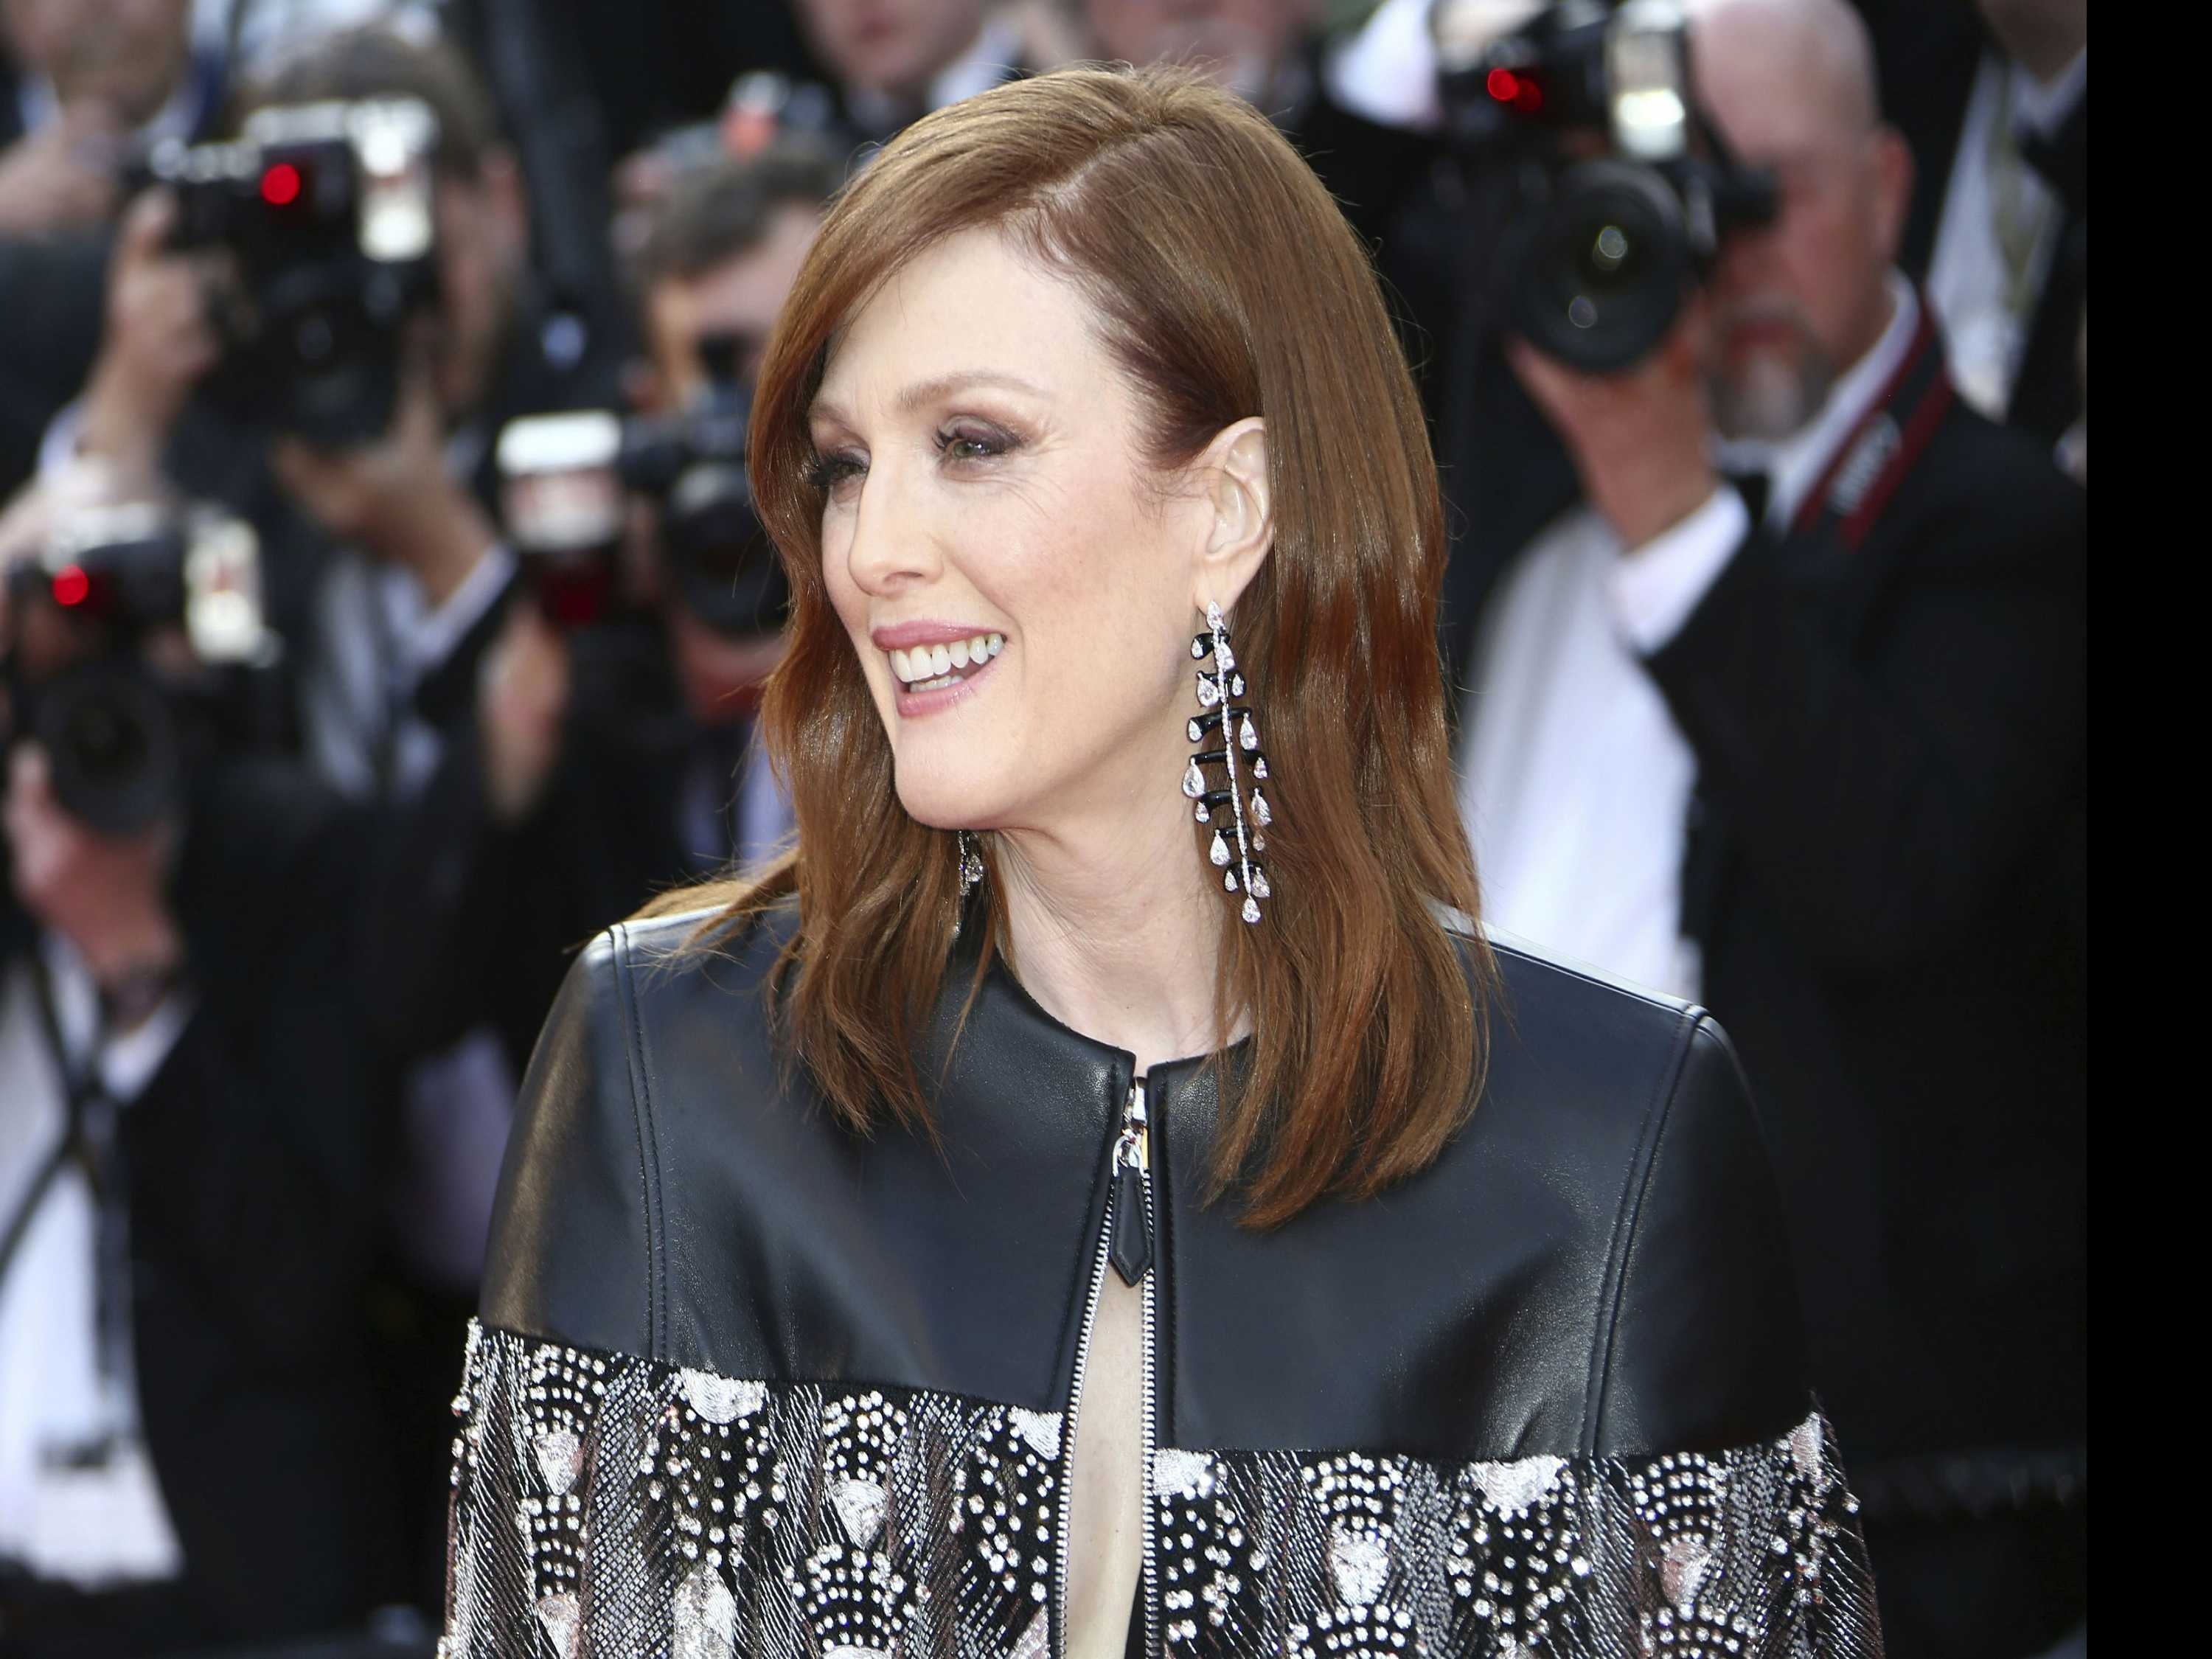 Julianne Moore on Gender Parity: 'I Believe in Quotas'